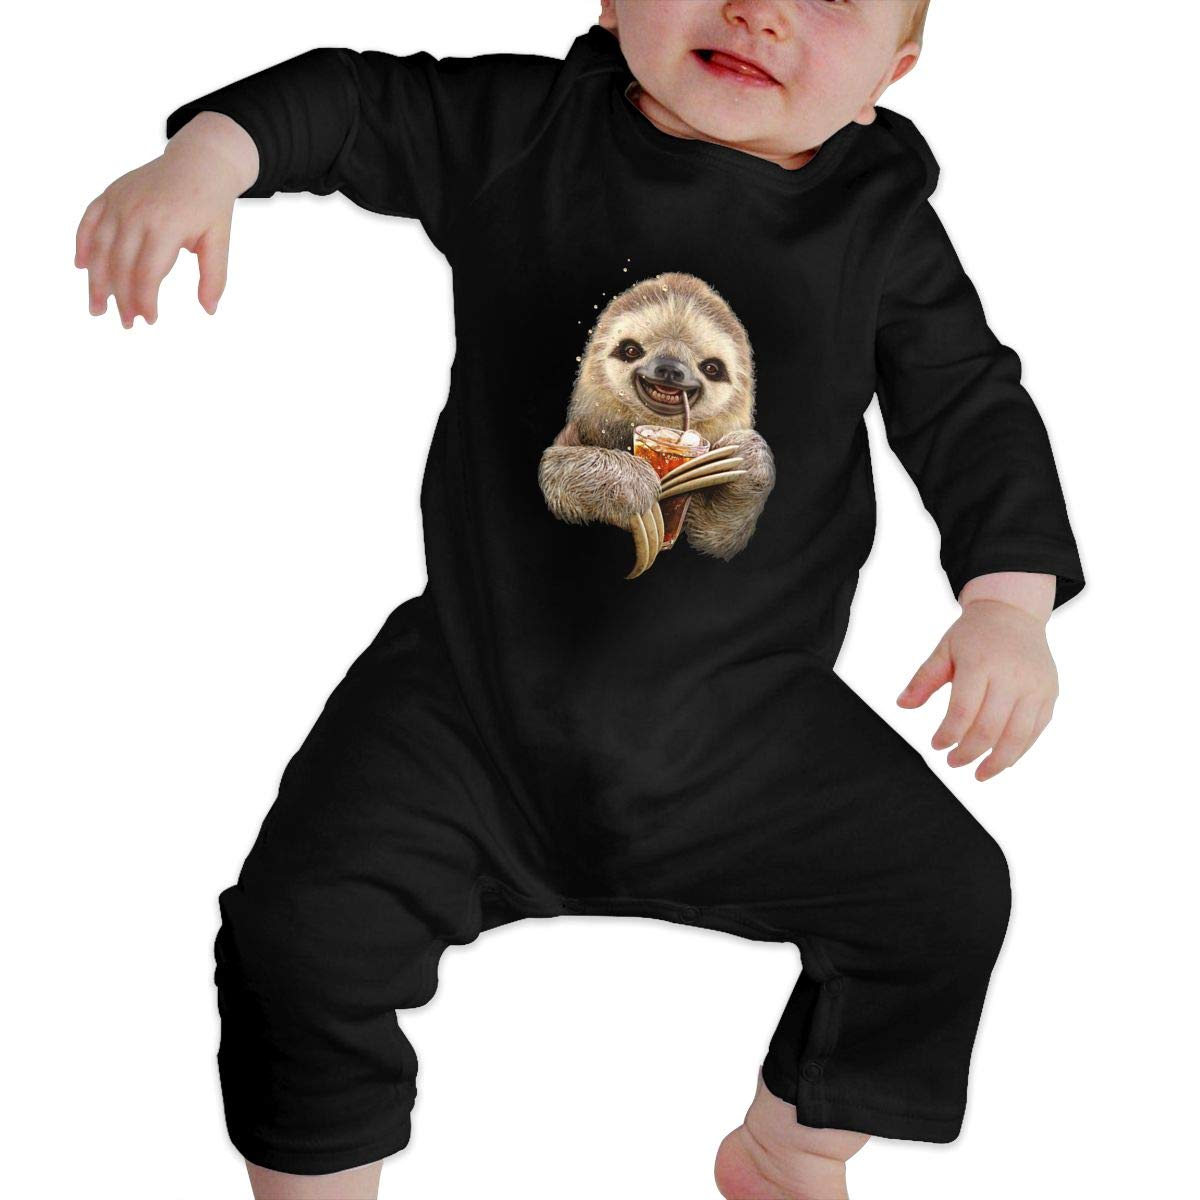 Mri-le1 Baby Girl Bodysuits Sloth Drinking Baby Clothes